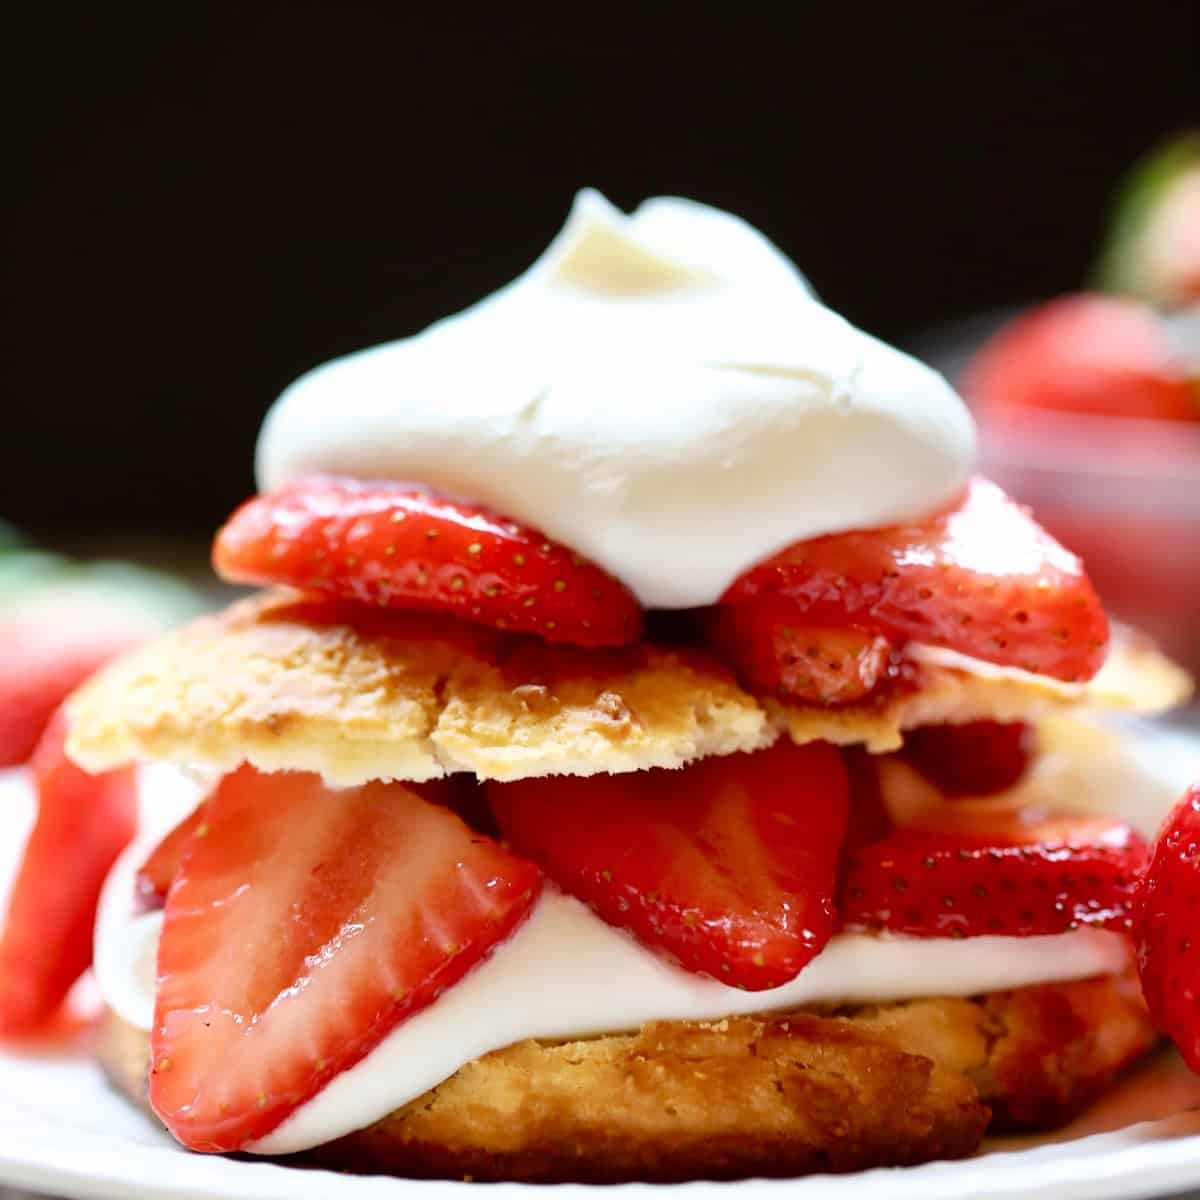 Classic Southern Strawberry Shortcake with fresh strawberries and whipped cream